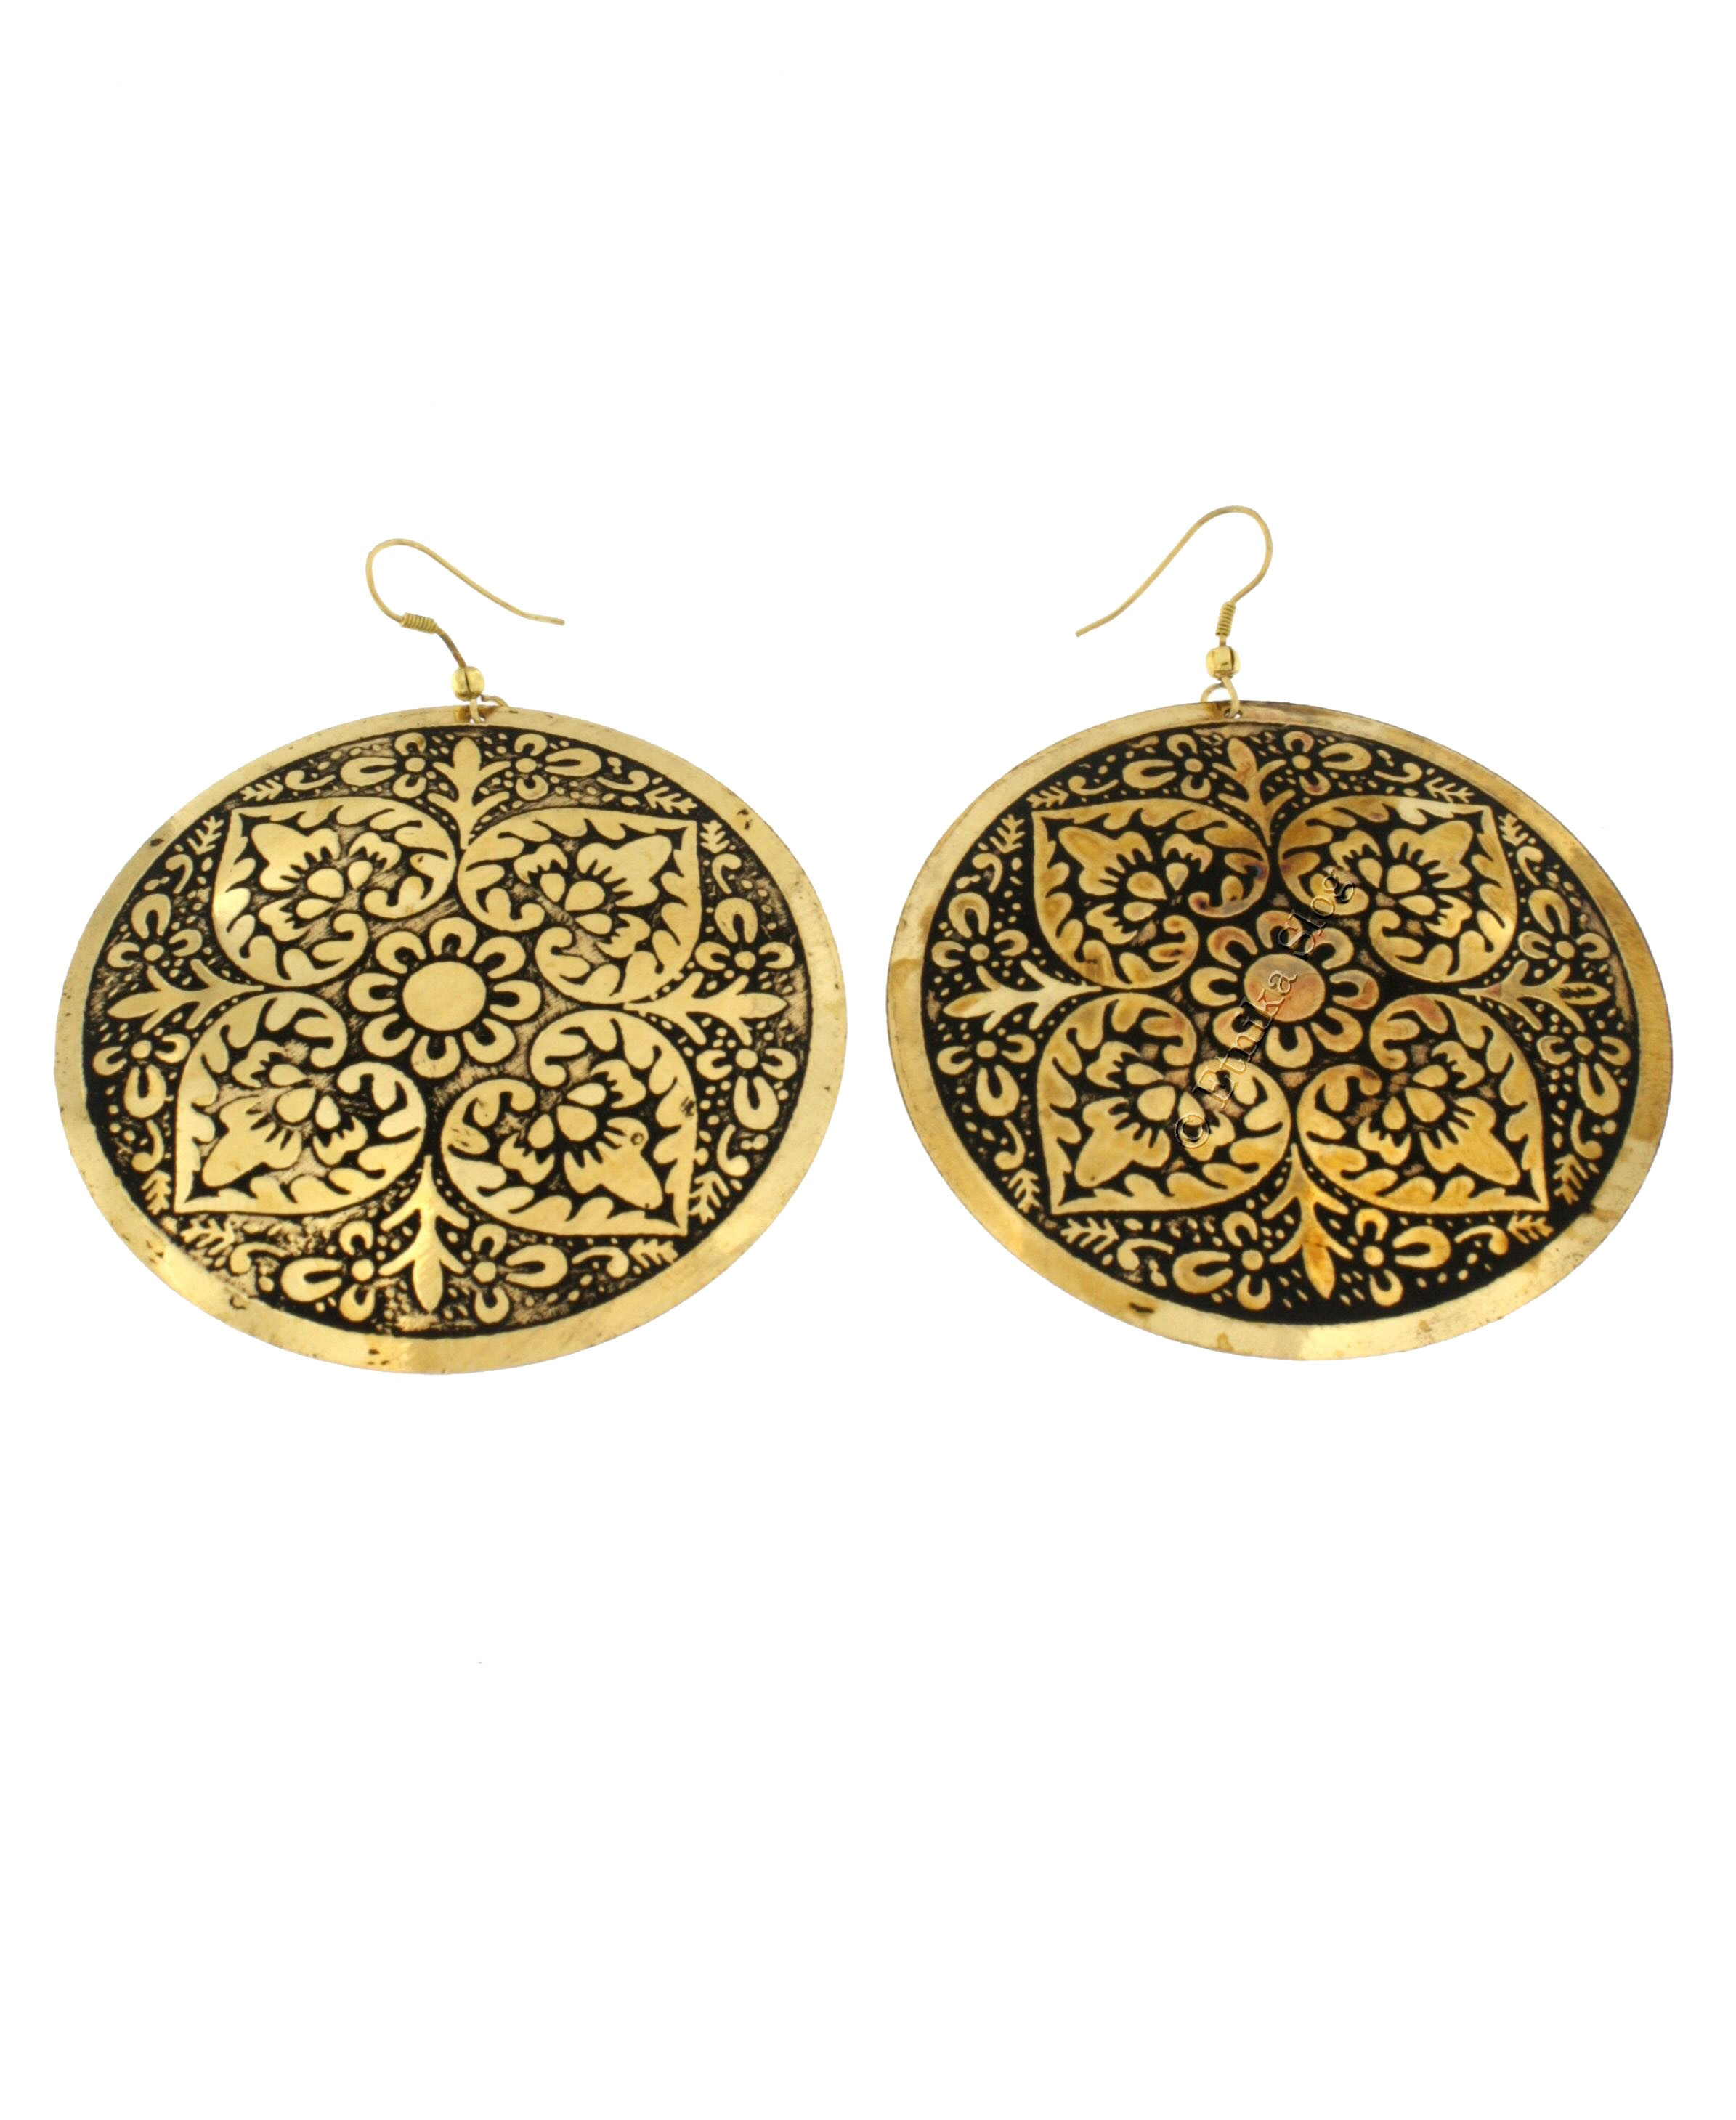 EARRINGS - METAL MB-OROT01-03 - Oriente Import S.r.l.